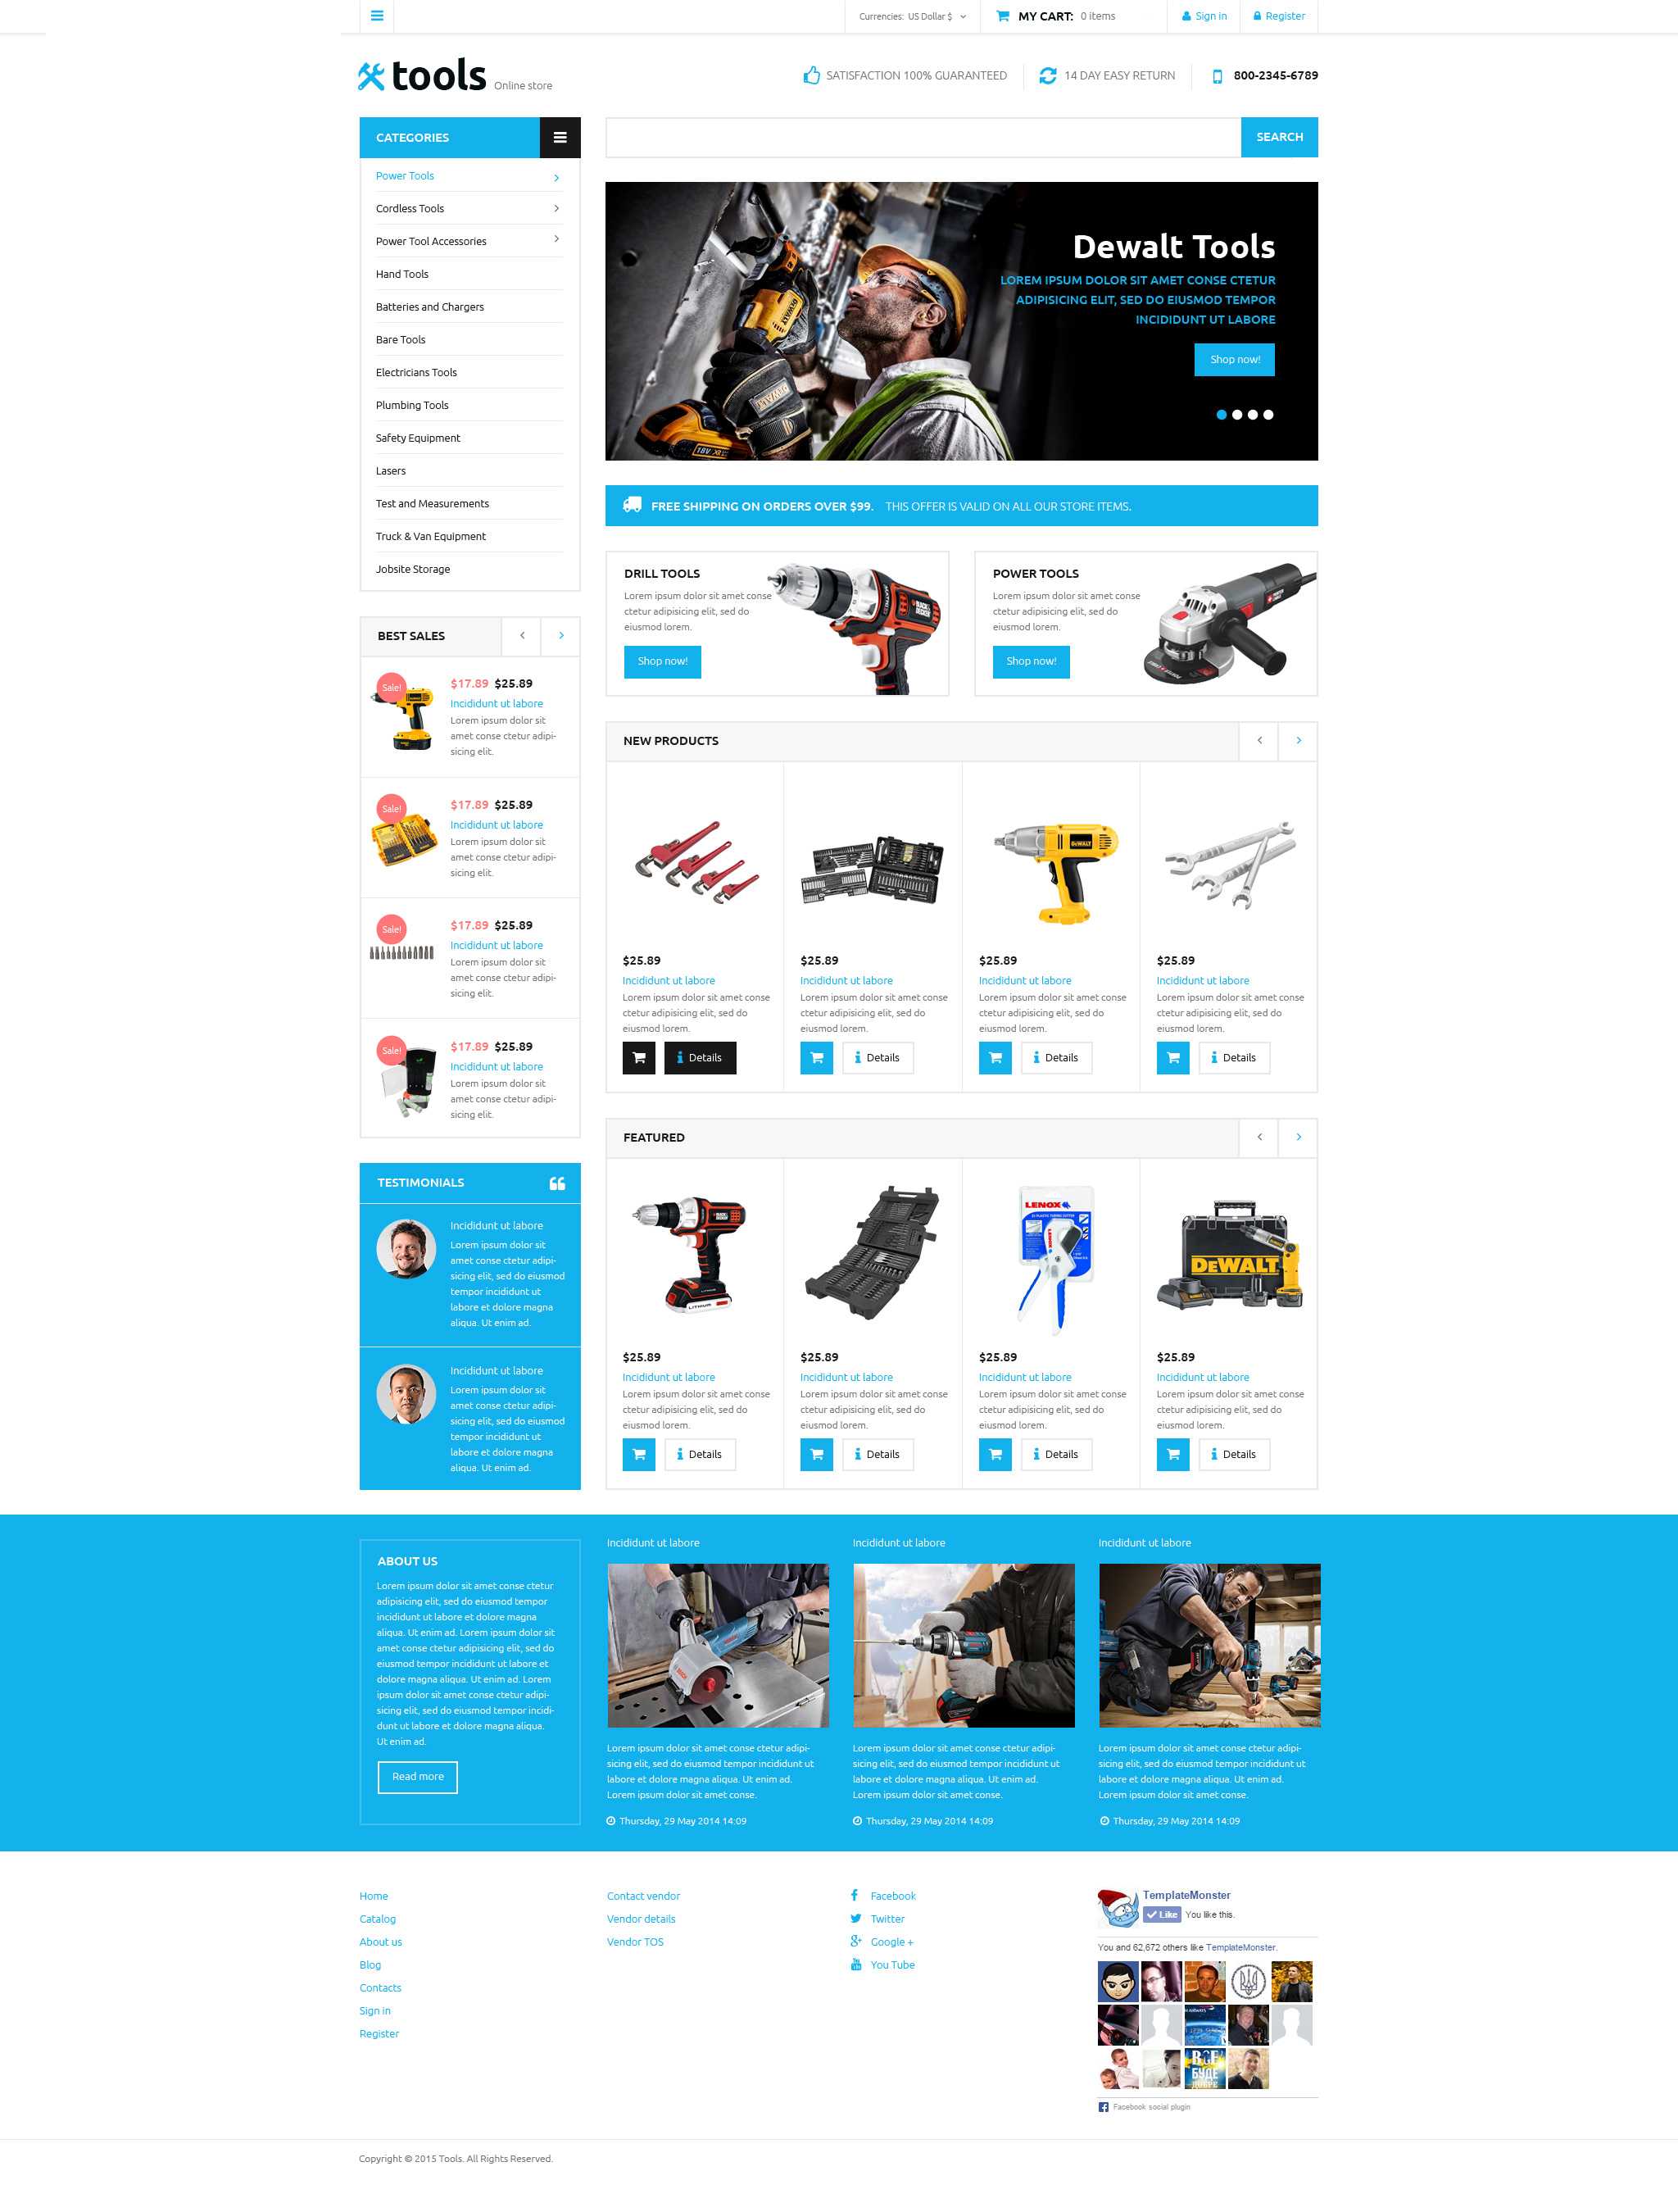 The Tools Online Store VirtueMart Design 53504, one of the best VirtueMart templates of its kind (most popular, tools & equipment), also known as tools online store VirtueMart template, purchase VirtueMart template, industrial VirtueMart template, special accessories VirtueMart template, products VirtueMart template, power VirtueMart template, profile VirtueMart template, standard VirtueMart template, drill VirtueMart template, lawn-mower VirtueMart template, gardening VirtueMart template, motor VirtueMart template, master VirtueMart template, cordless VirtueMart template, air VirtueMart template, power VirtueMart template, tool VirtueMart template, electric pliers VirtueMart template, advice dealership dealer VirtueMart template, repair VirtueMart template, rent VirtueMart template, cutting VirtueMart template, clamps VirtueMart template, automotive VirtueMart template, remover VirtueMart template, puller and related with tools online store, purchase, industrial, special accessories, products, power, profile, standard, drill, lawn-mower, gardening, motor, master, cordless, air, power, tool, electric pliers, advice dealership dealer, repair, rent, cutting, clamps, automotive, remover, puller, etc.